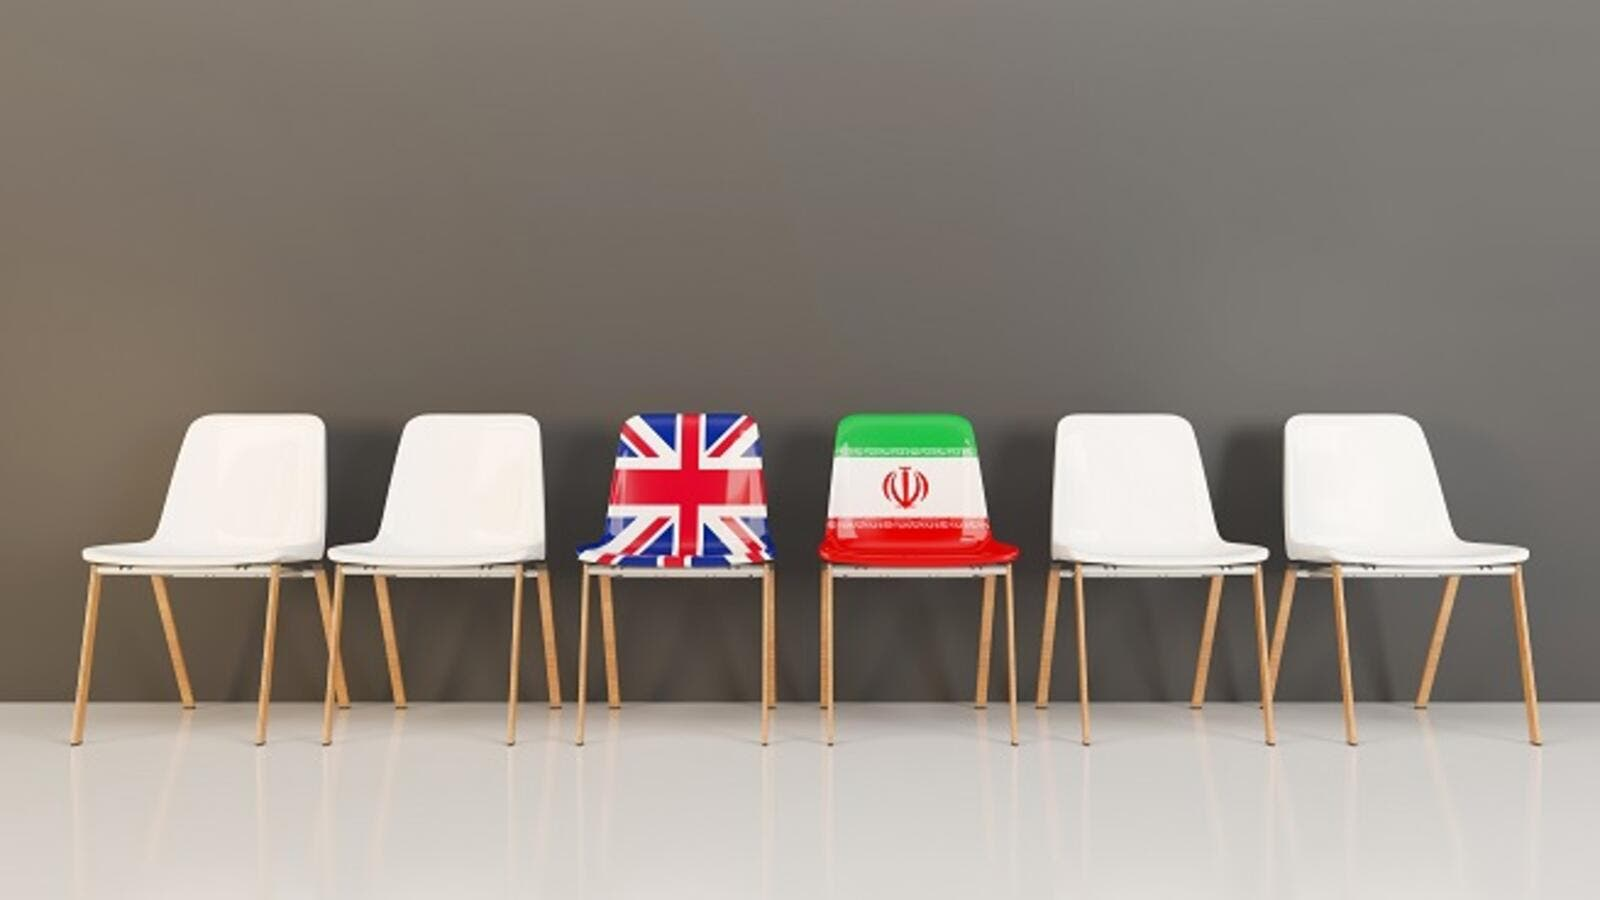 Europe is establishing a banking system to overcome problems regarding banking relations with Tehran, the path will be soon even clearer for Tehran-London economic ties. (Shutterstock)